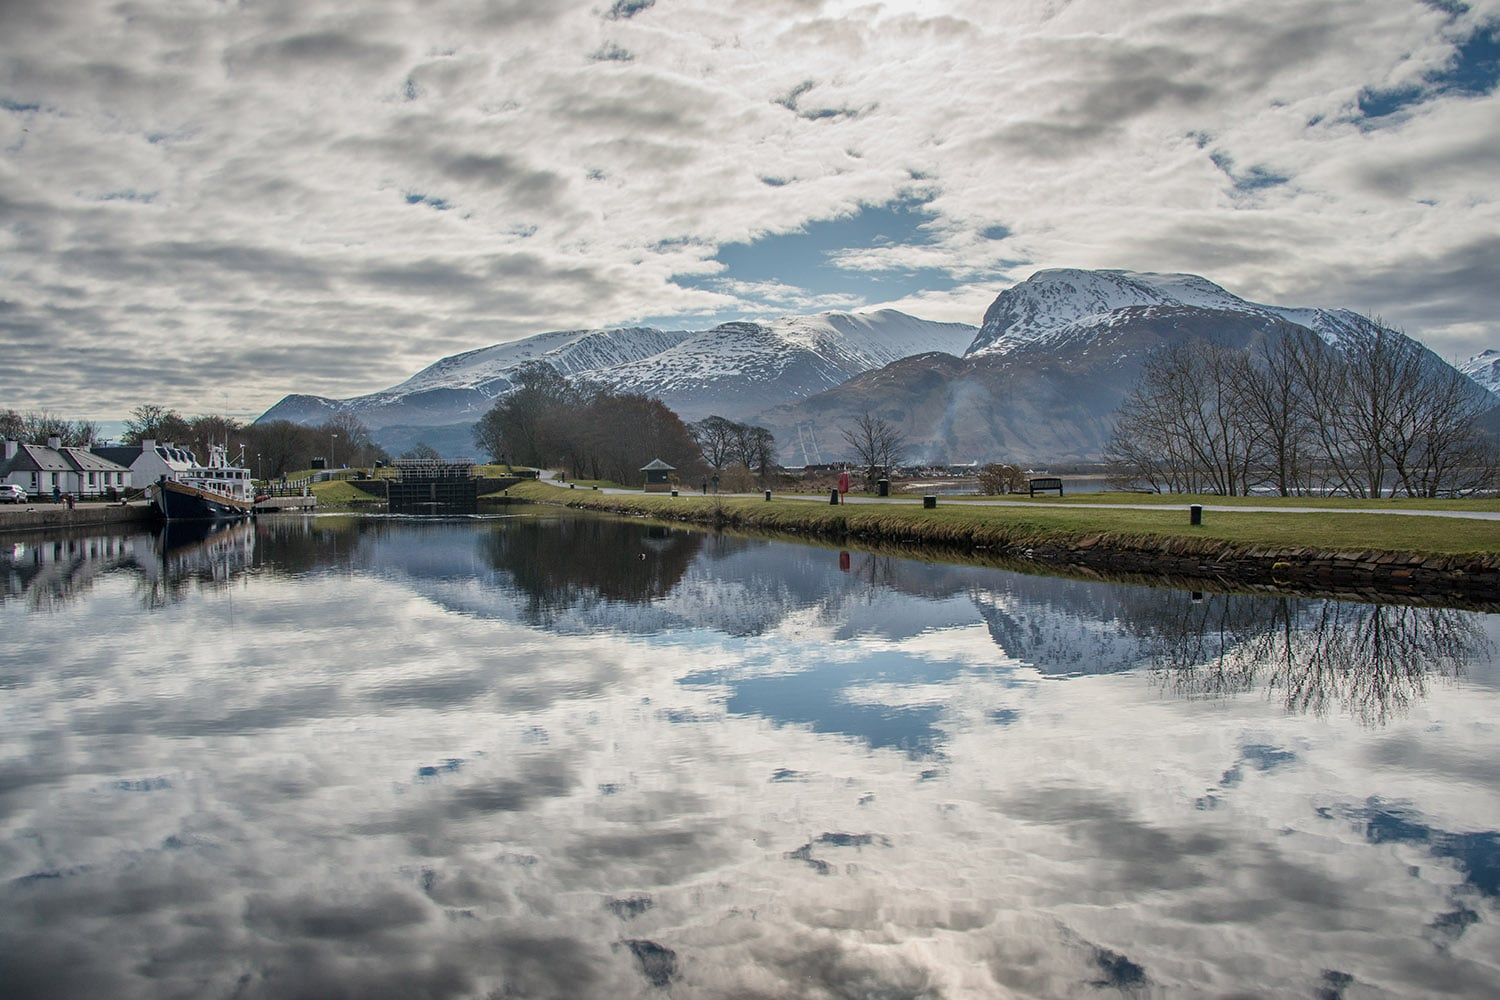 Ben Nevis is the highest mountain in the British Isles and can be visited on a tour of Scotland